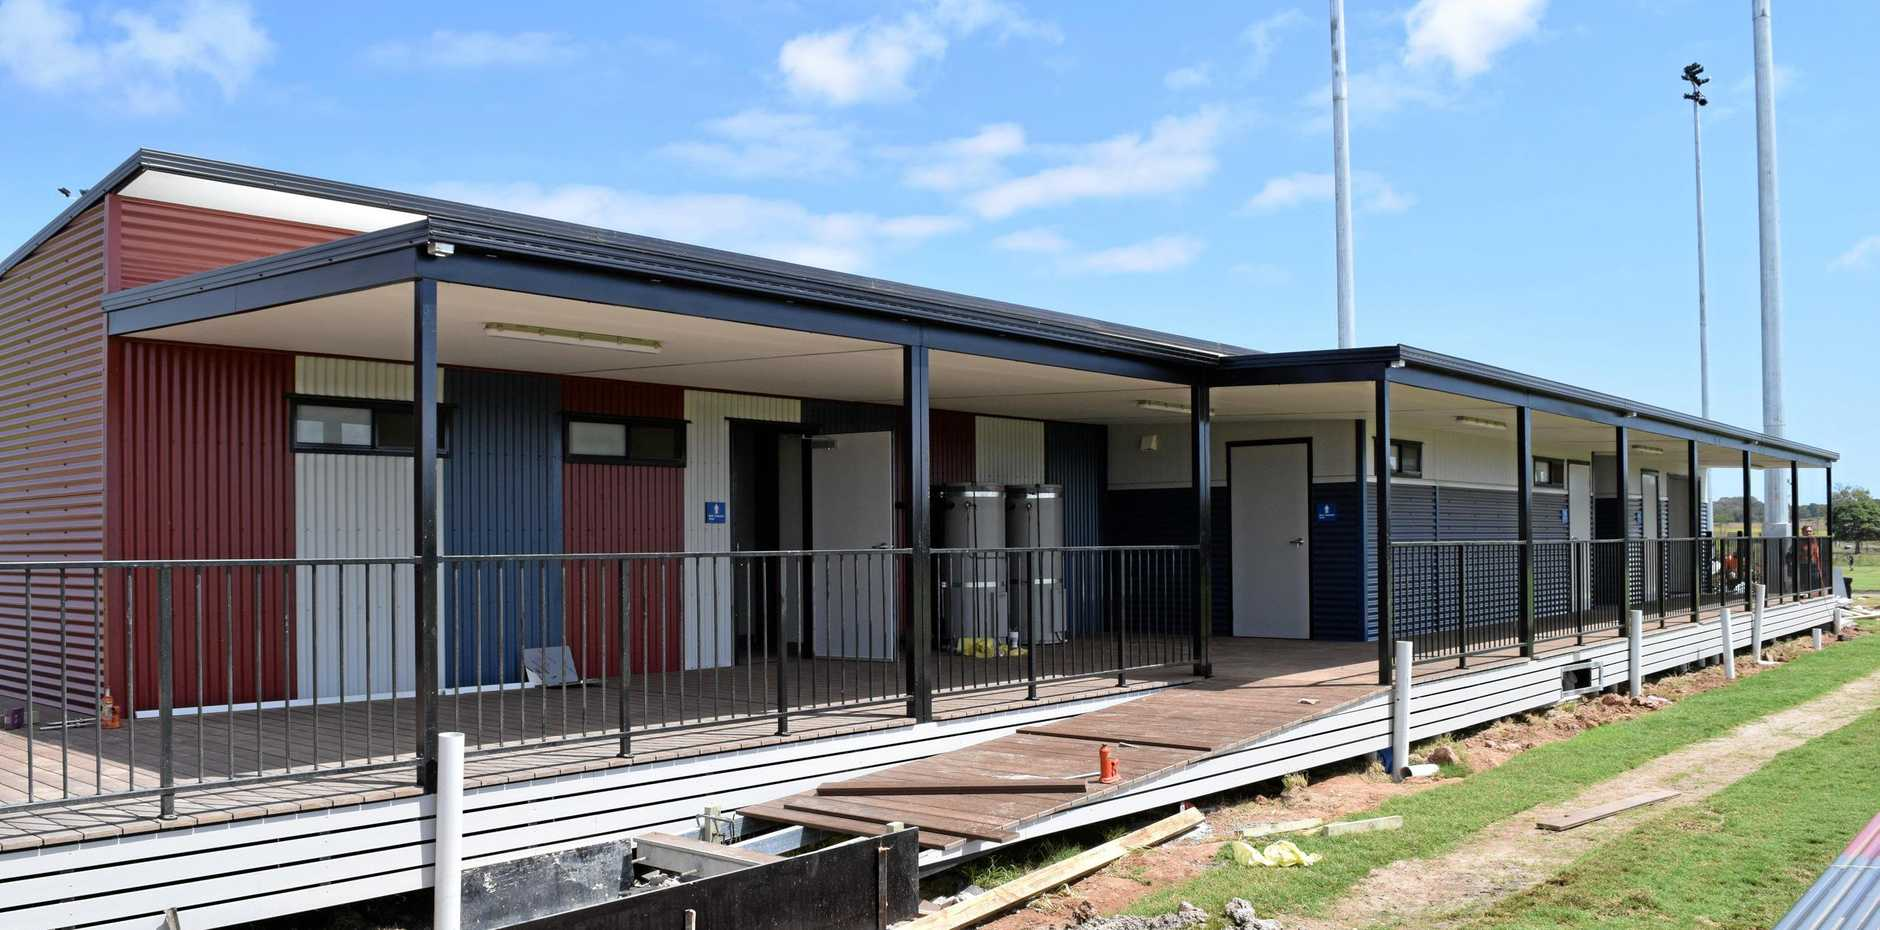 NEARING COMPLETION: Workers are putting the final touches on the clubhouses at the Sports Precinct ahead of the community opening day this weekend. Sport clubs will fit out the clubhouses once completed.